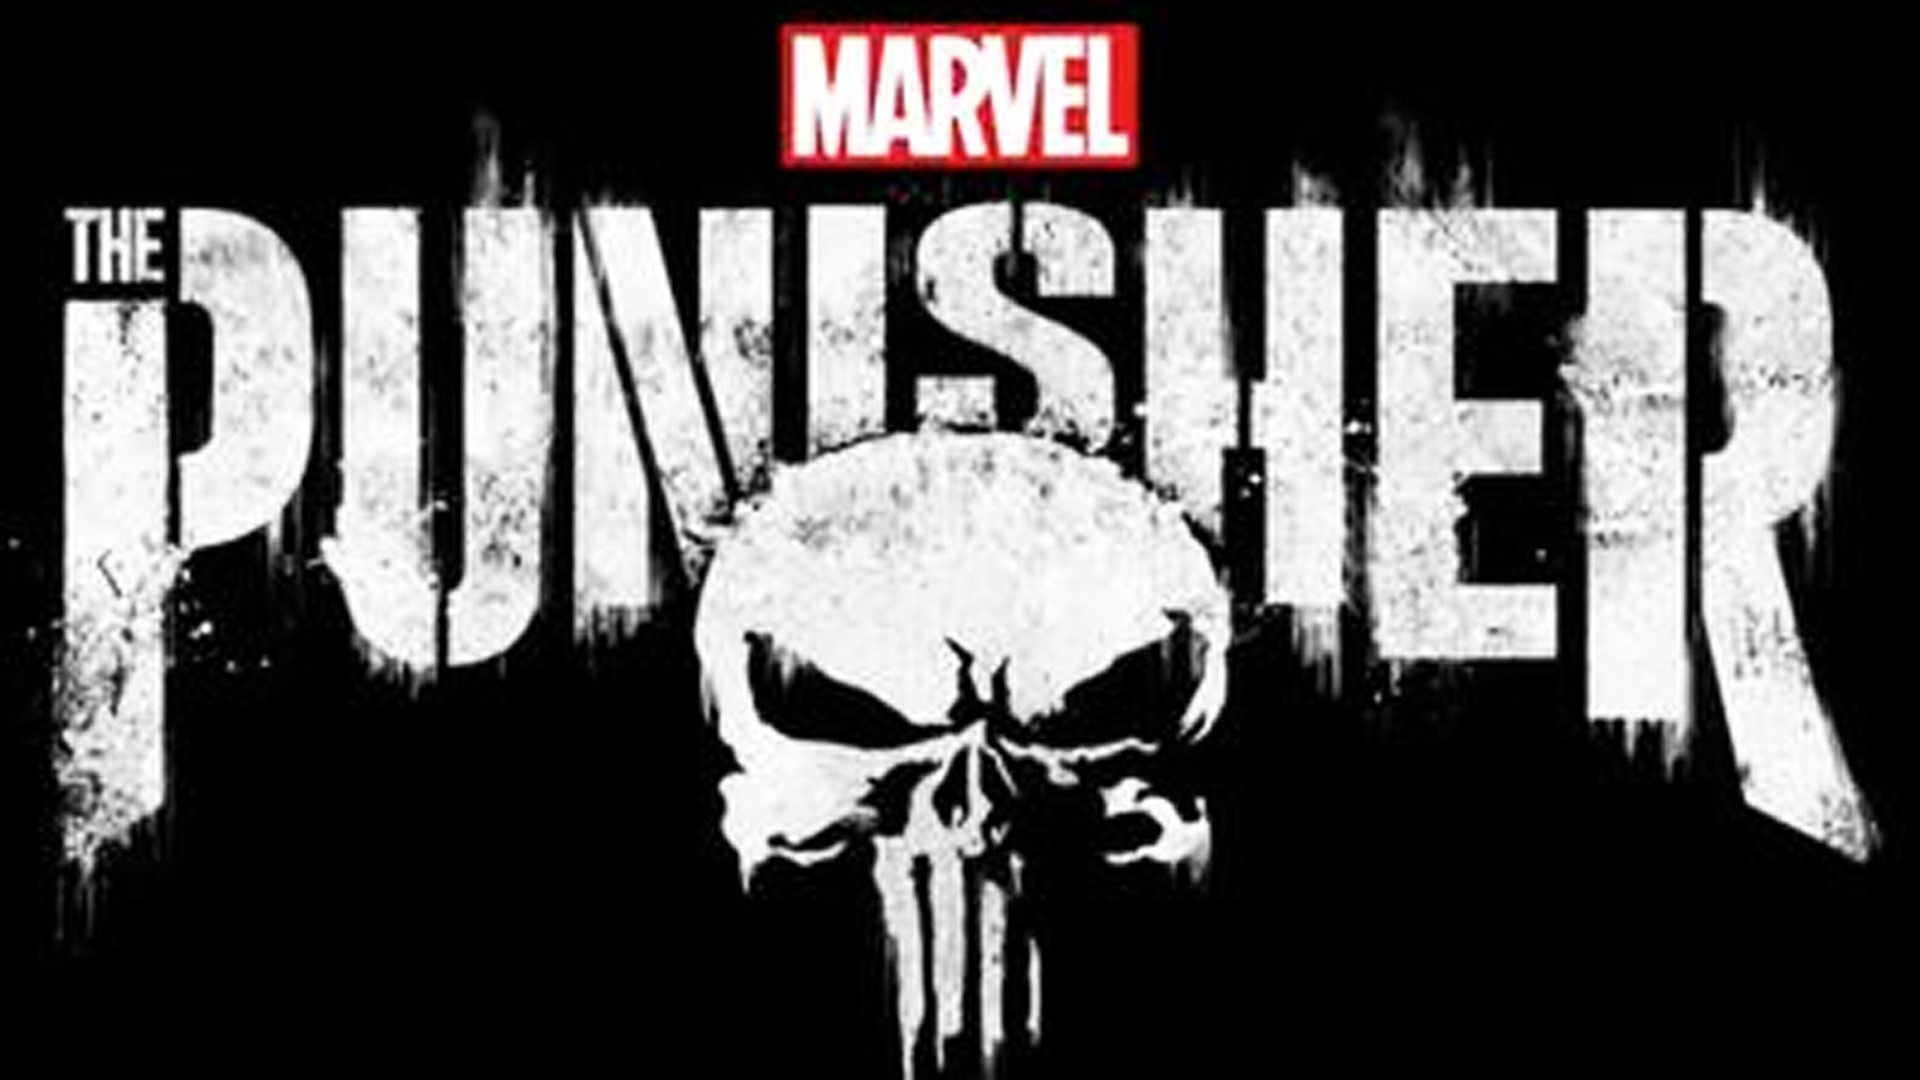 The Punisher Wallpapers 66 Images